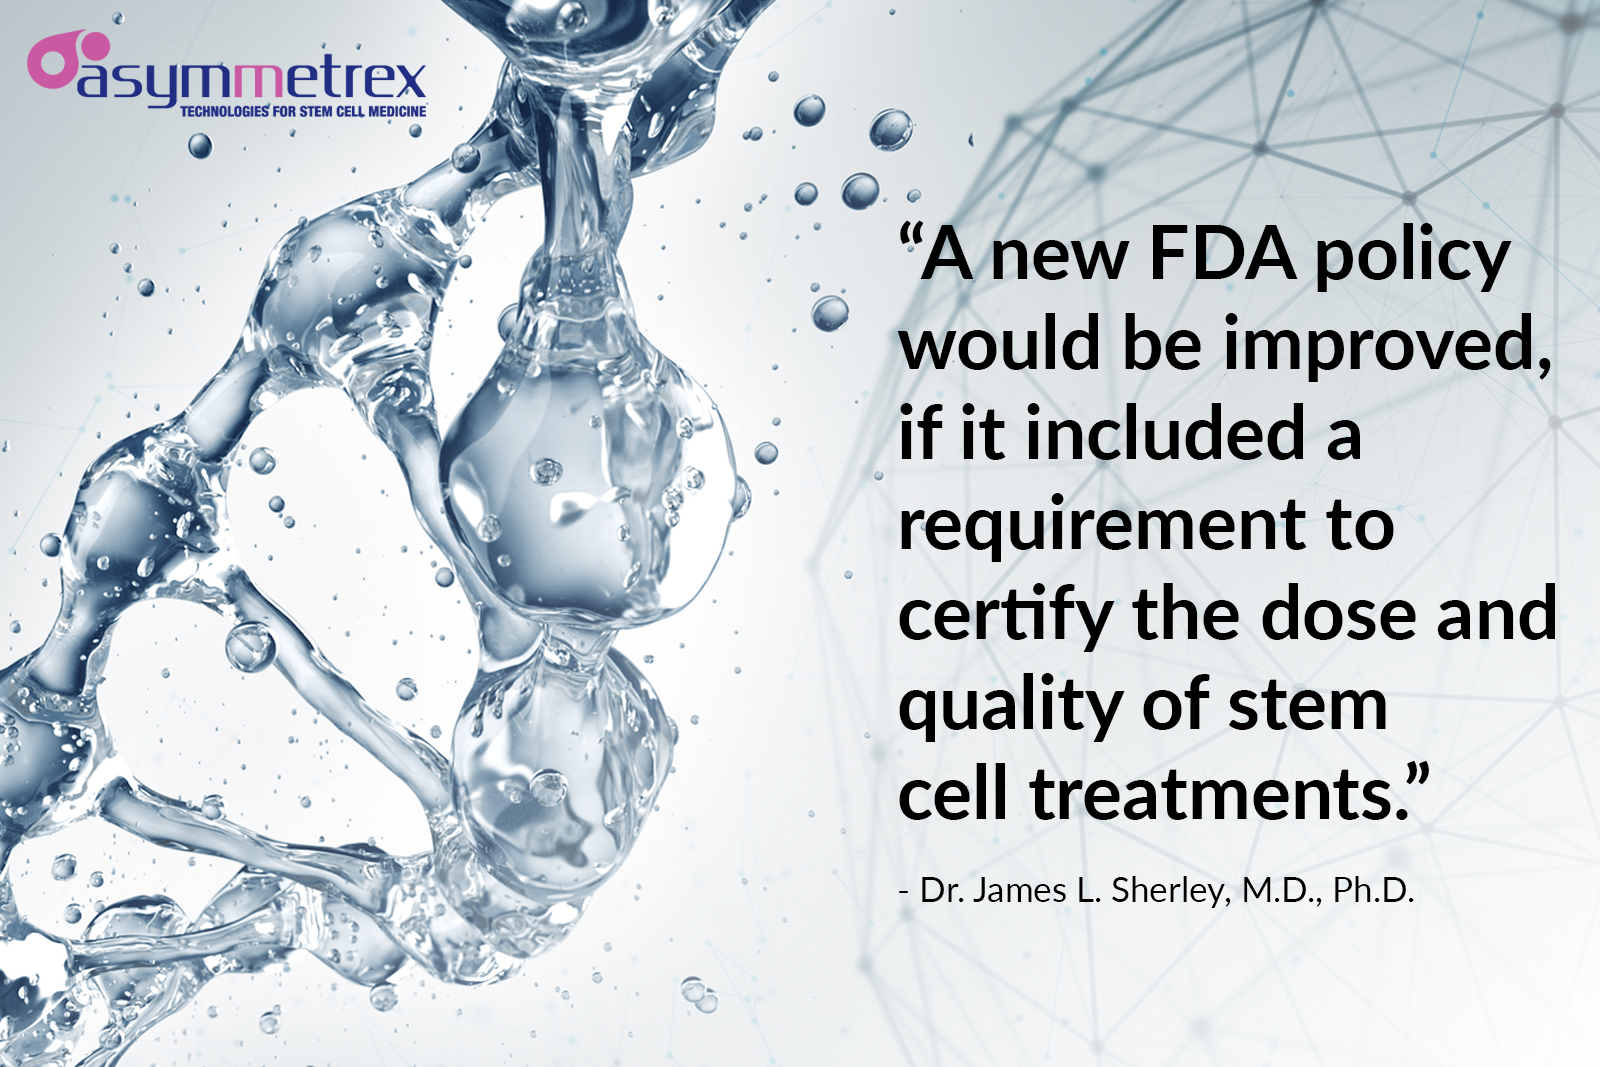 Asymmetrex Proposes Its Technology to Support Anticipated FDA Policies